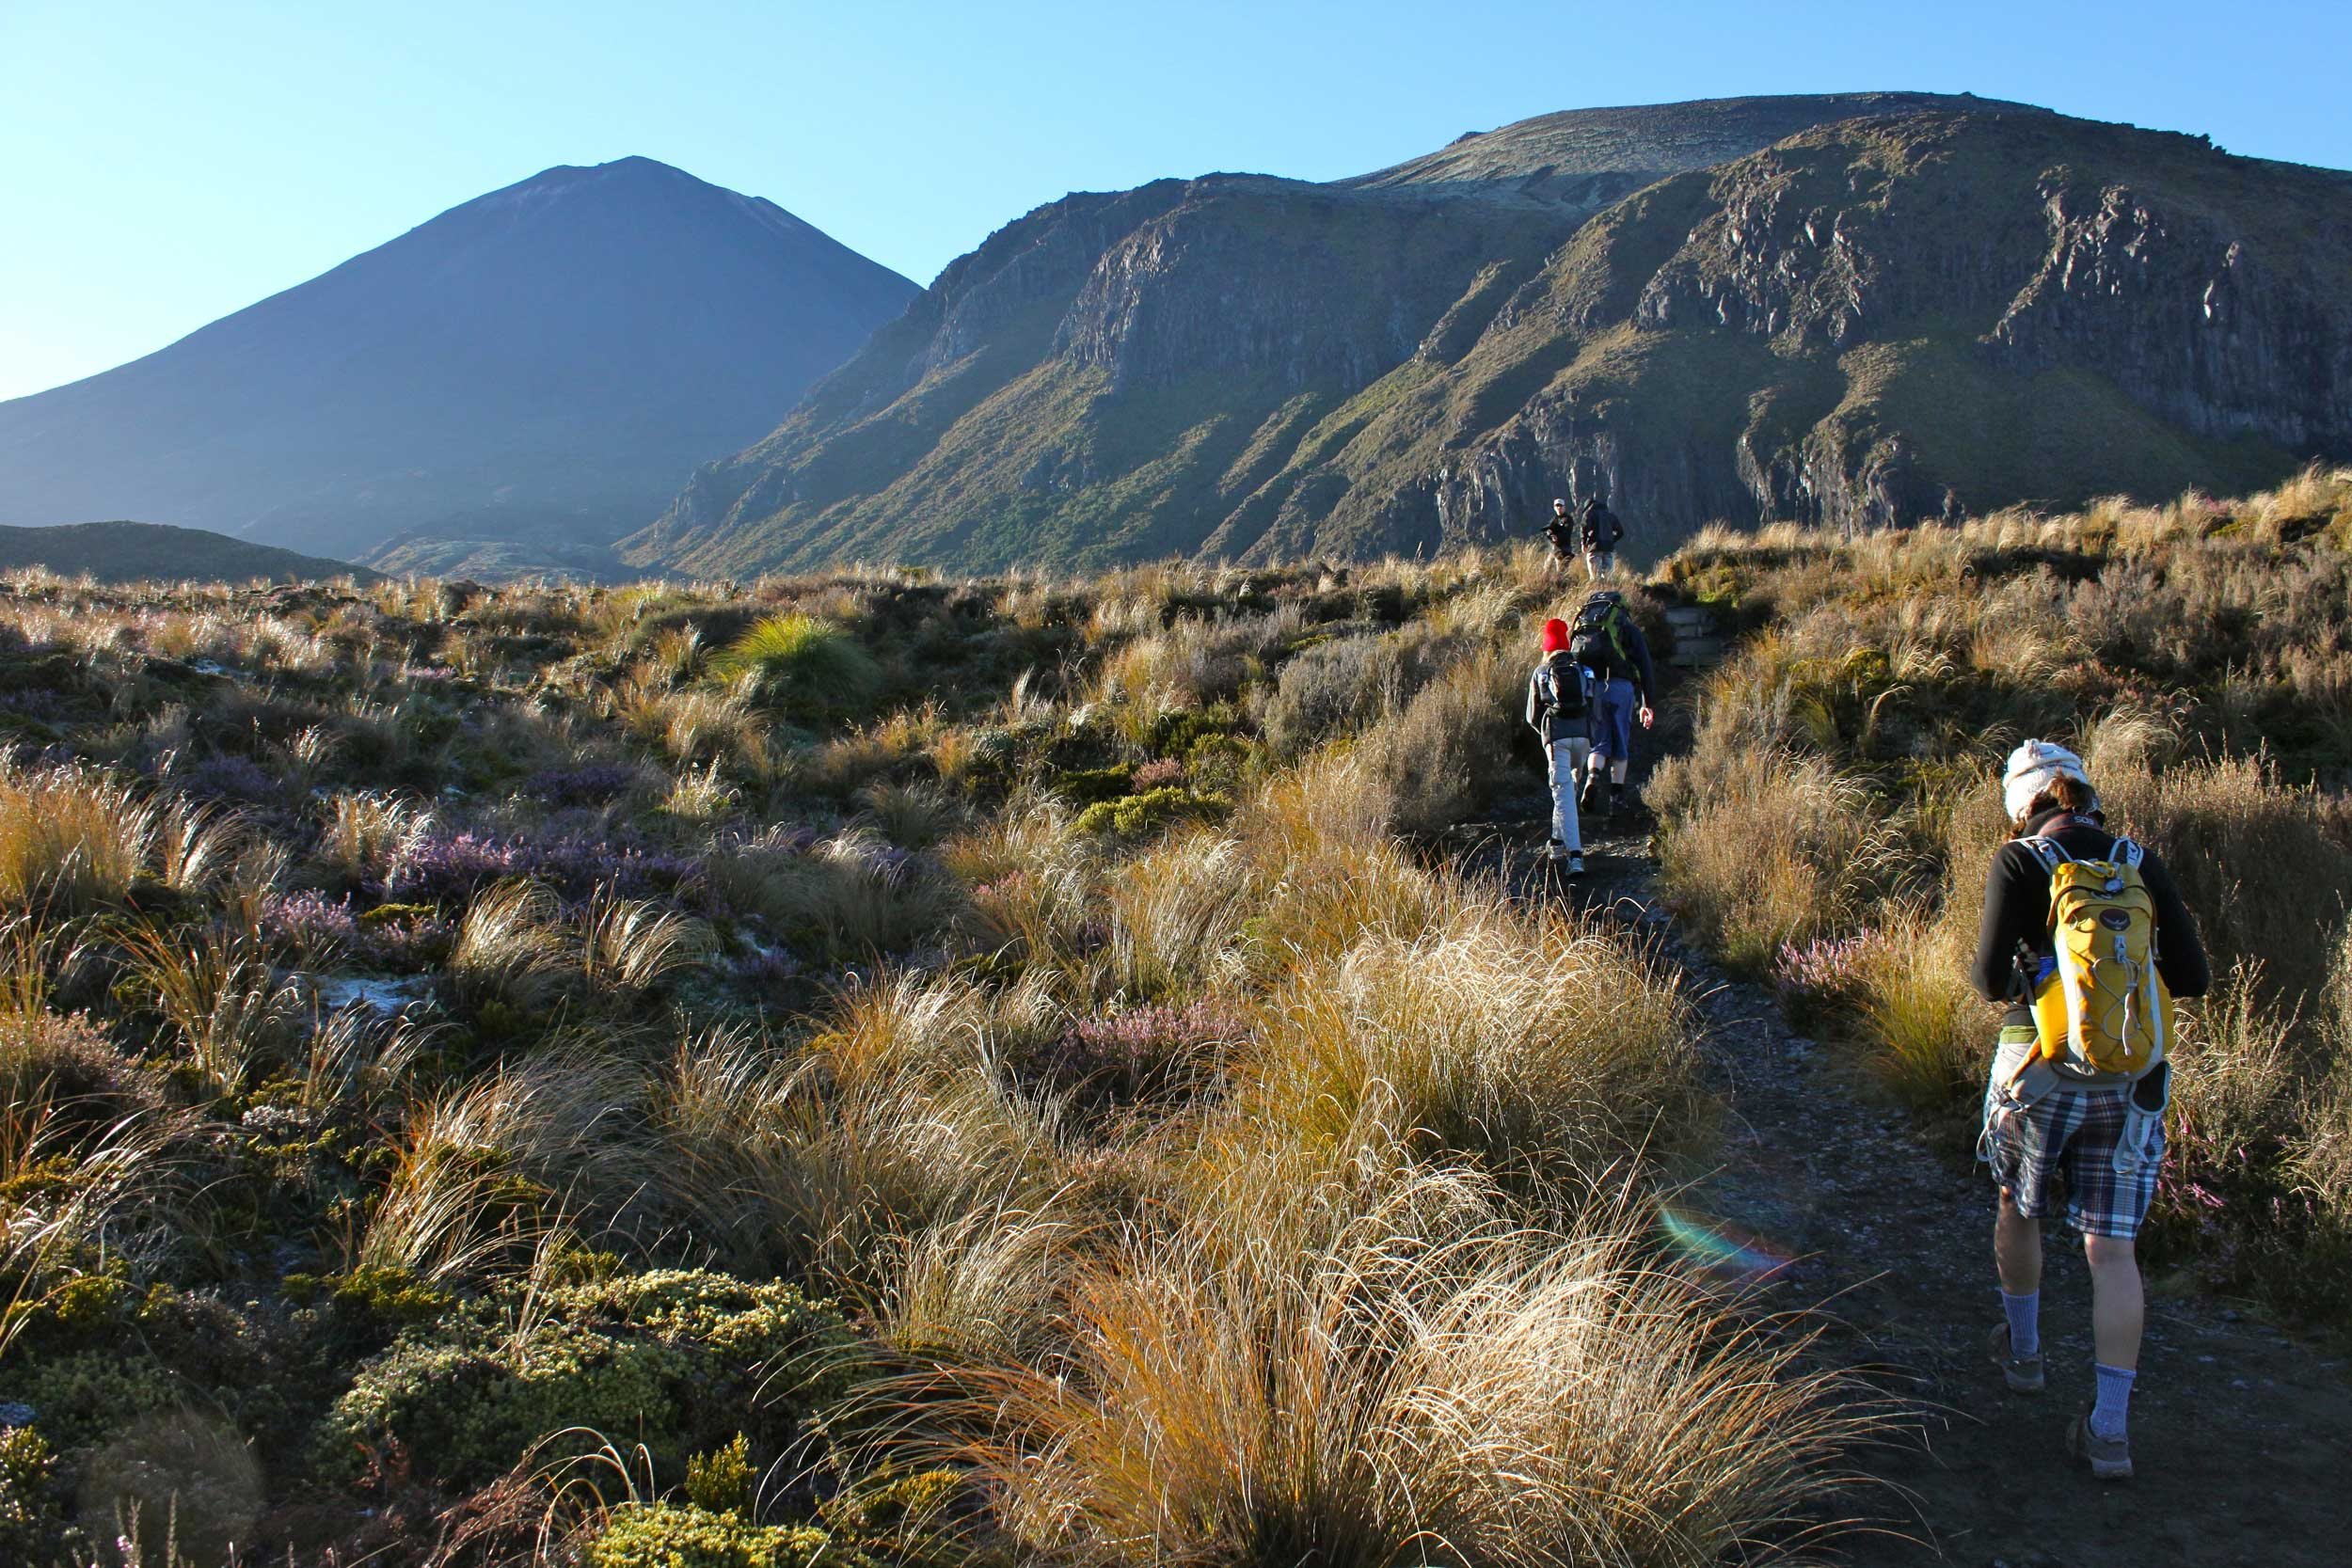 Some hikers with backpacks walking a track through tussock heading for mountains up ahead of them while doing the Tongariro crossing